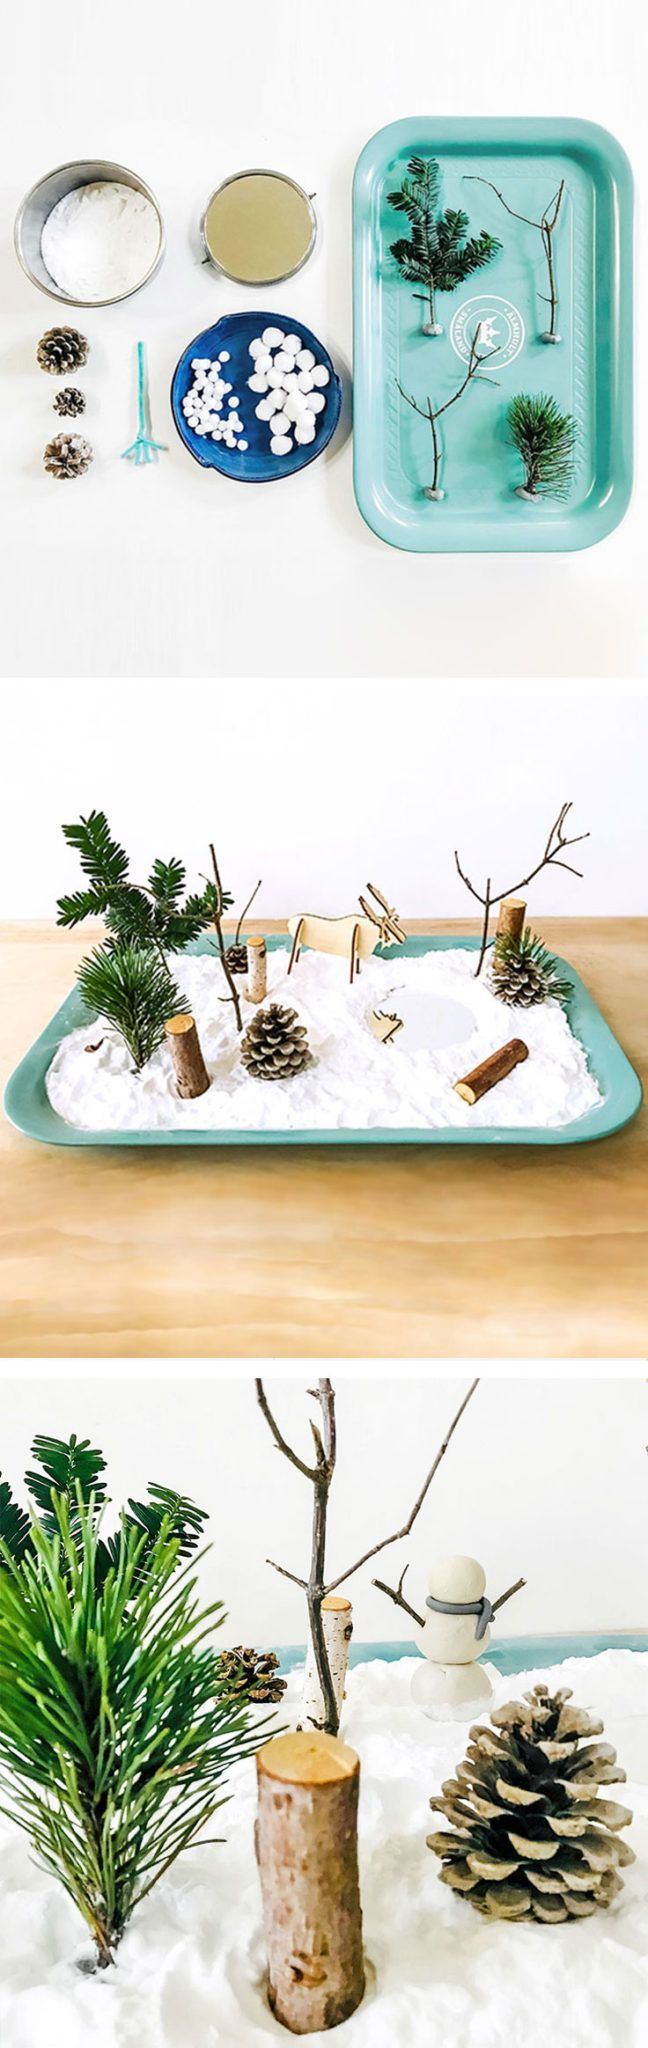 This fun wintry little invitation to create combines Montessori-style exploration and mindful play + quiet exercises in meditation. | via barley & birch